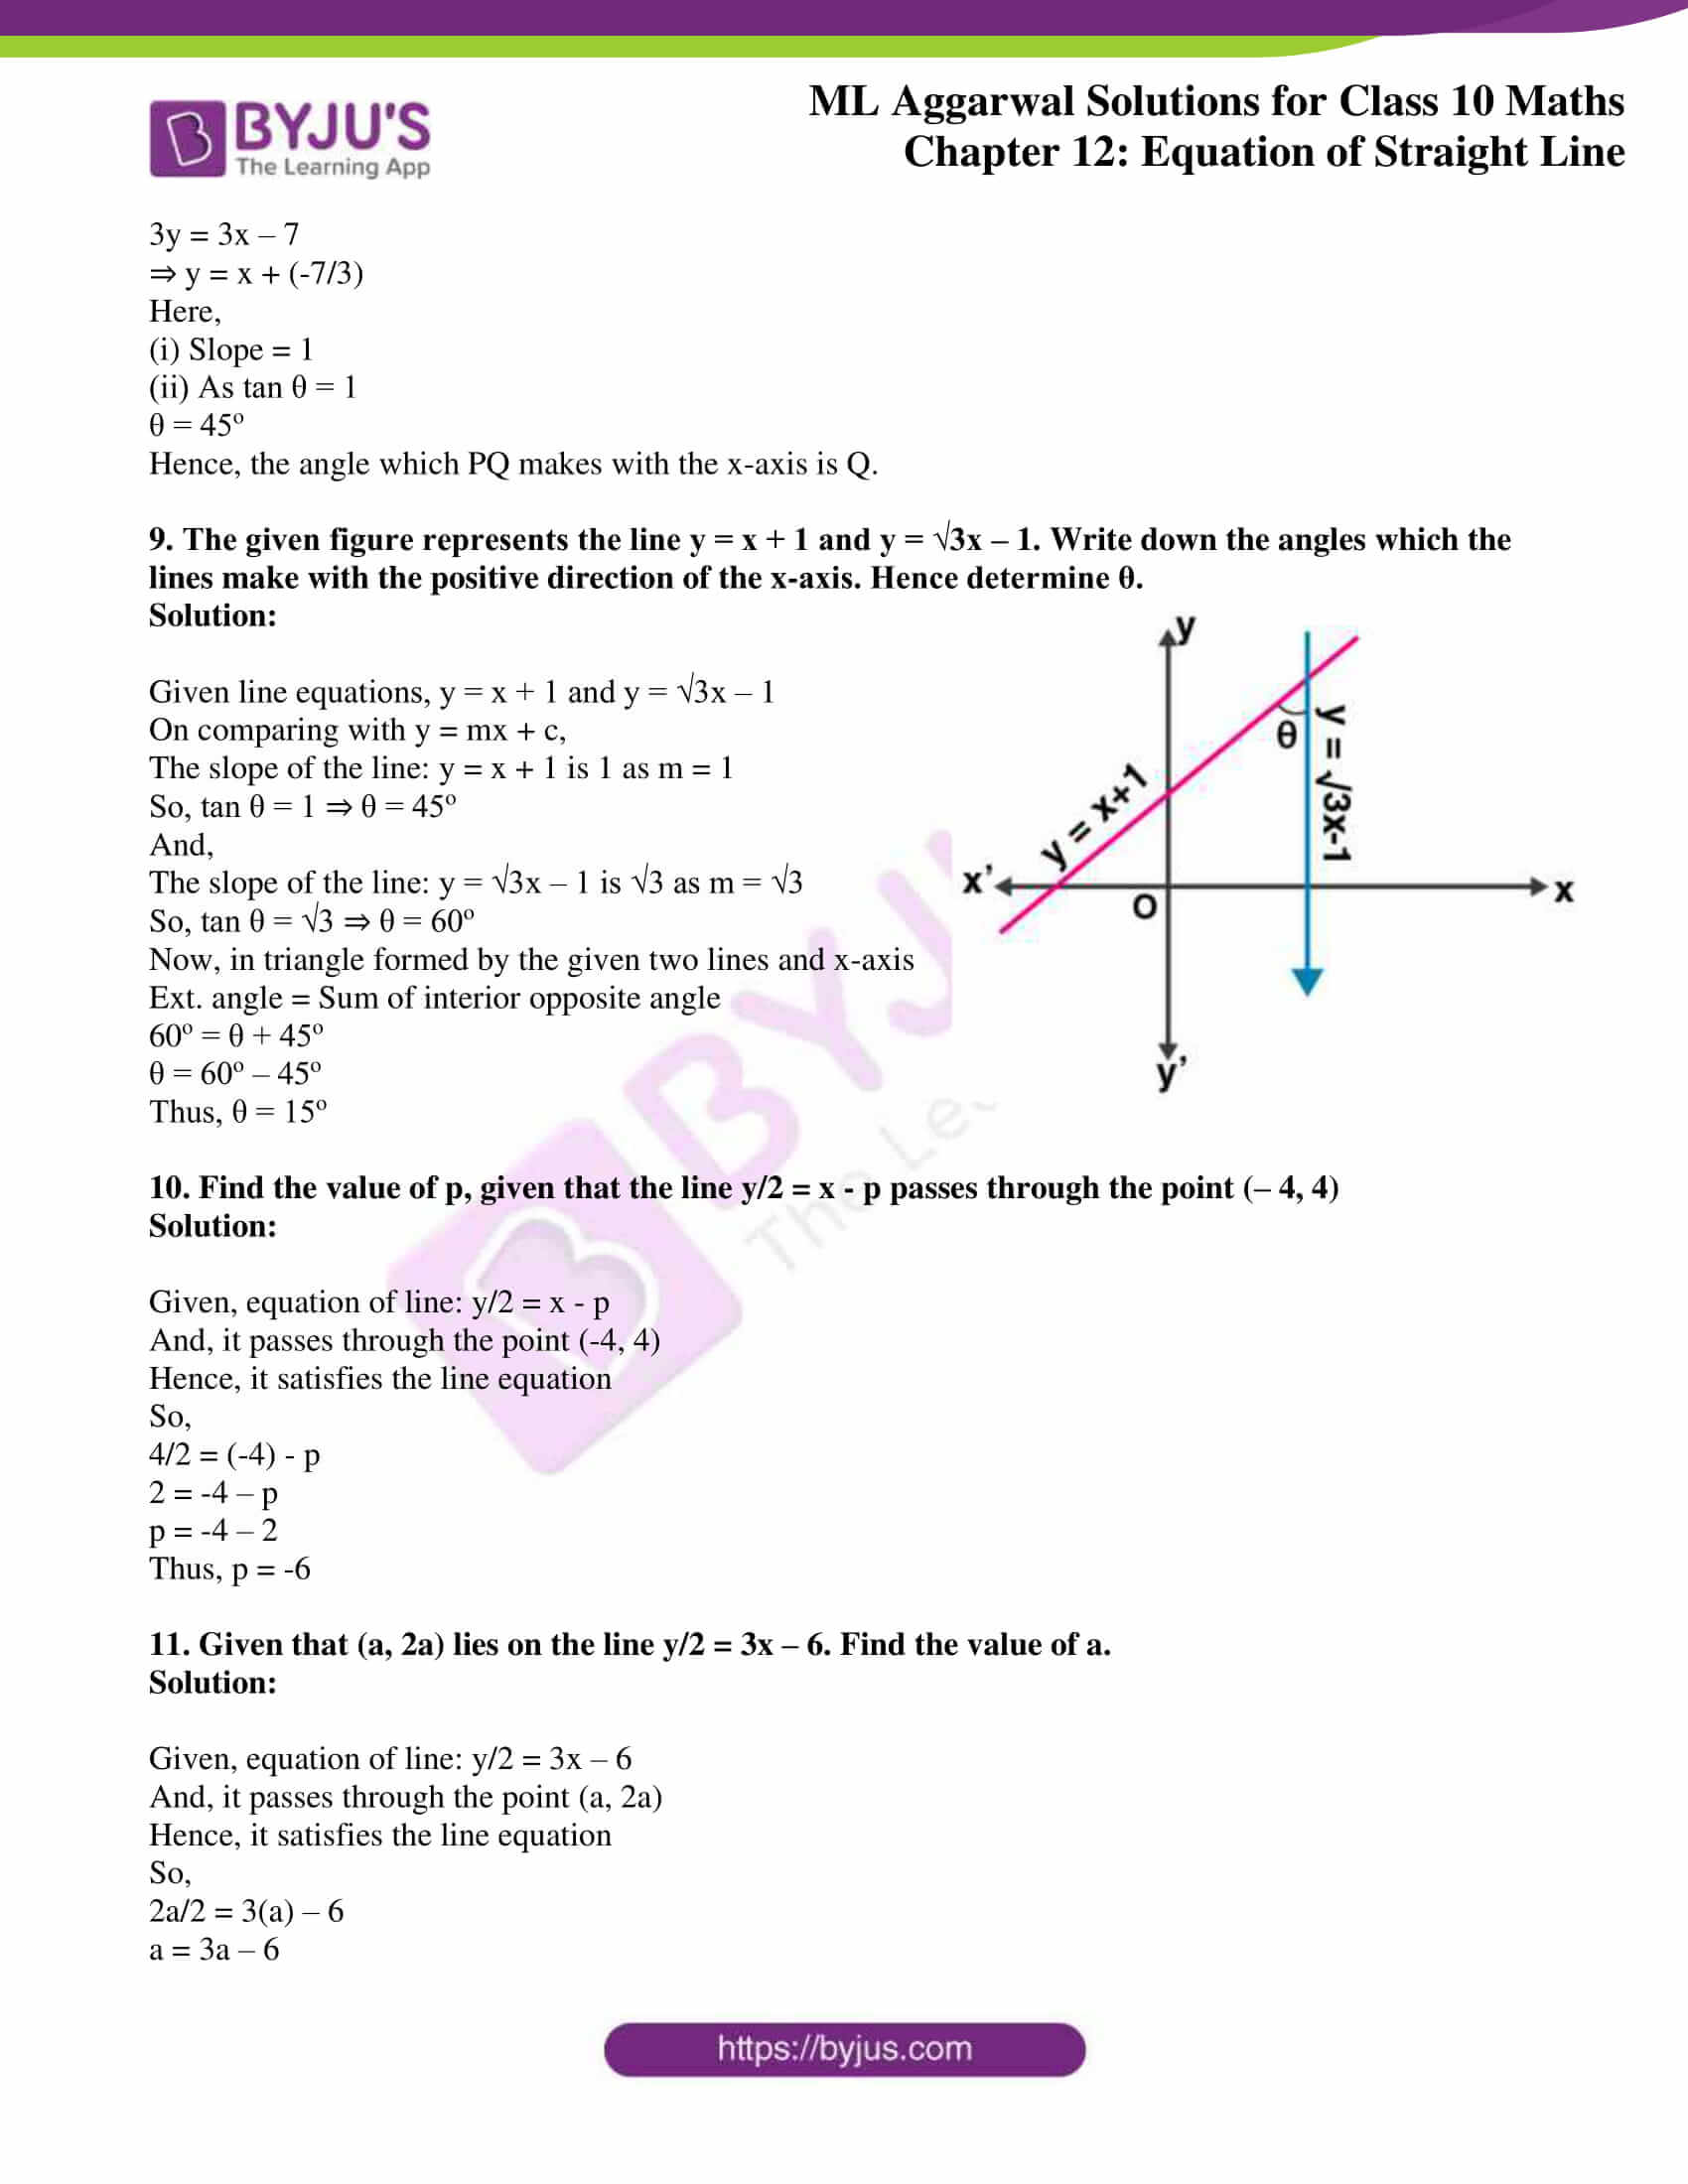 ml aggarwal solutions for class 10 maths chapter 12 04